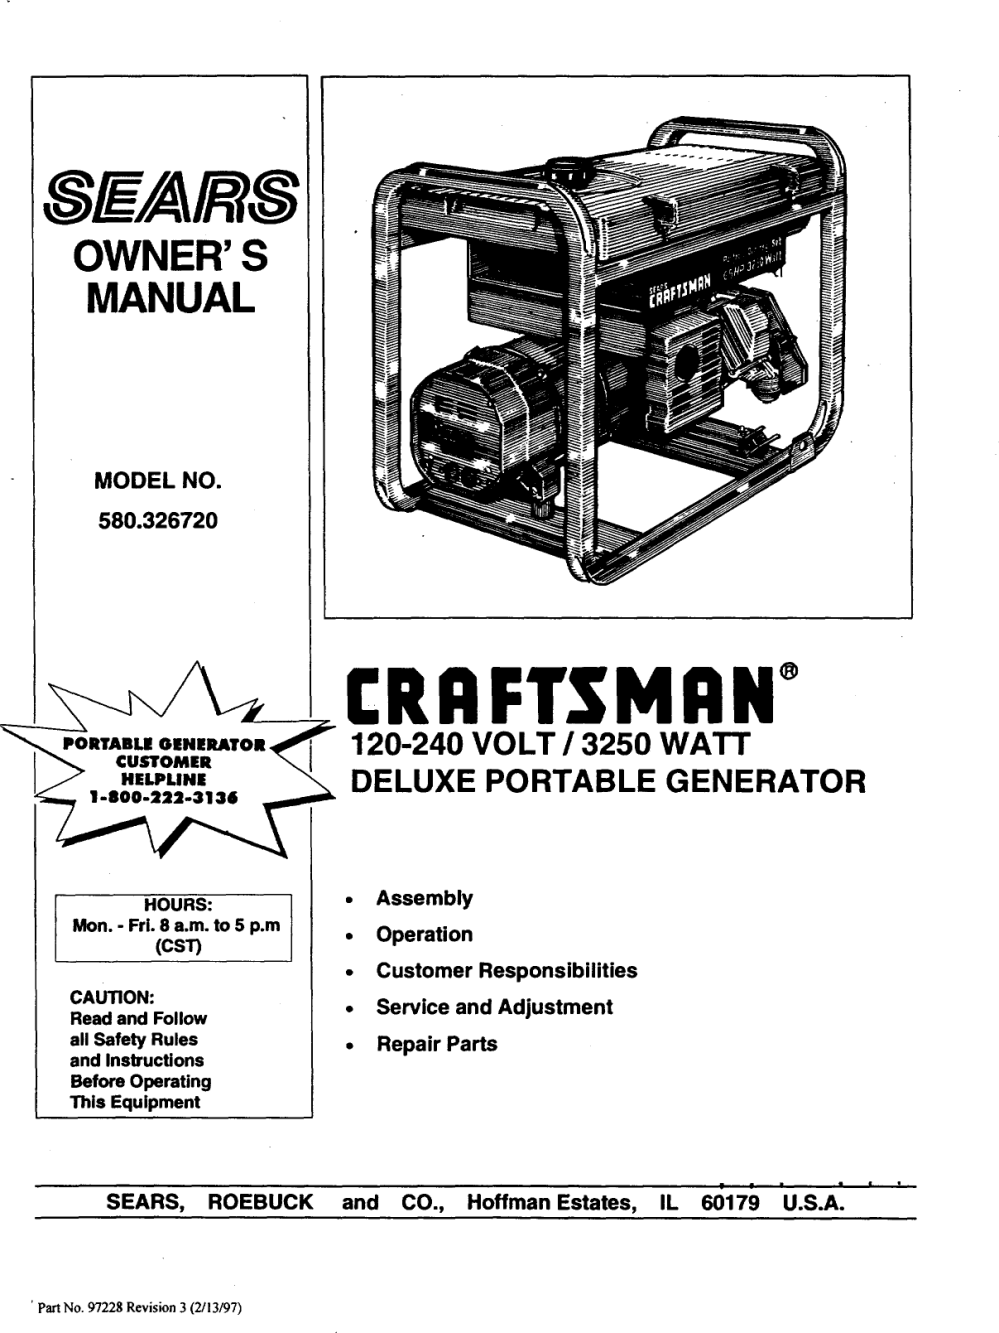 medium resolution of craftsman 580326720 user manual deluxe portable generator manuals and guides 98070398